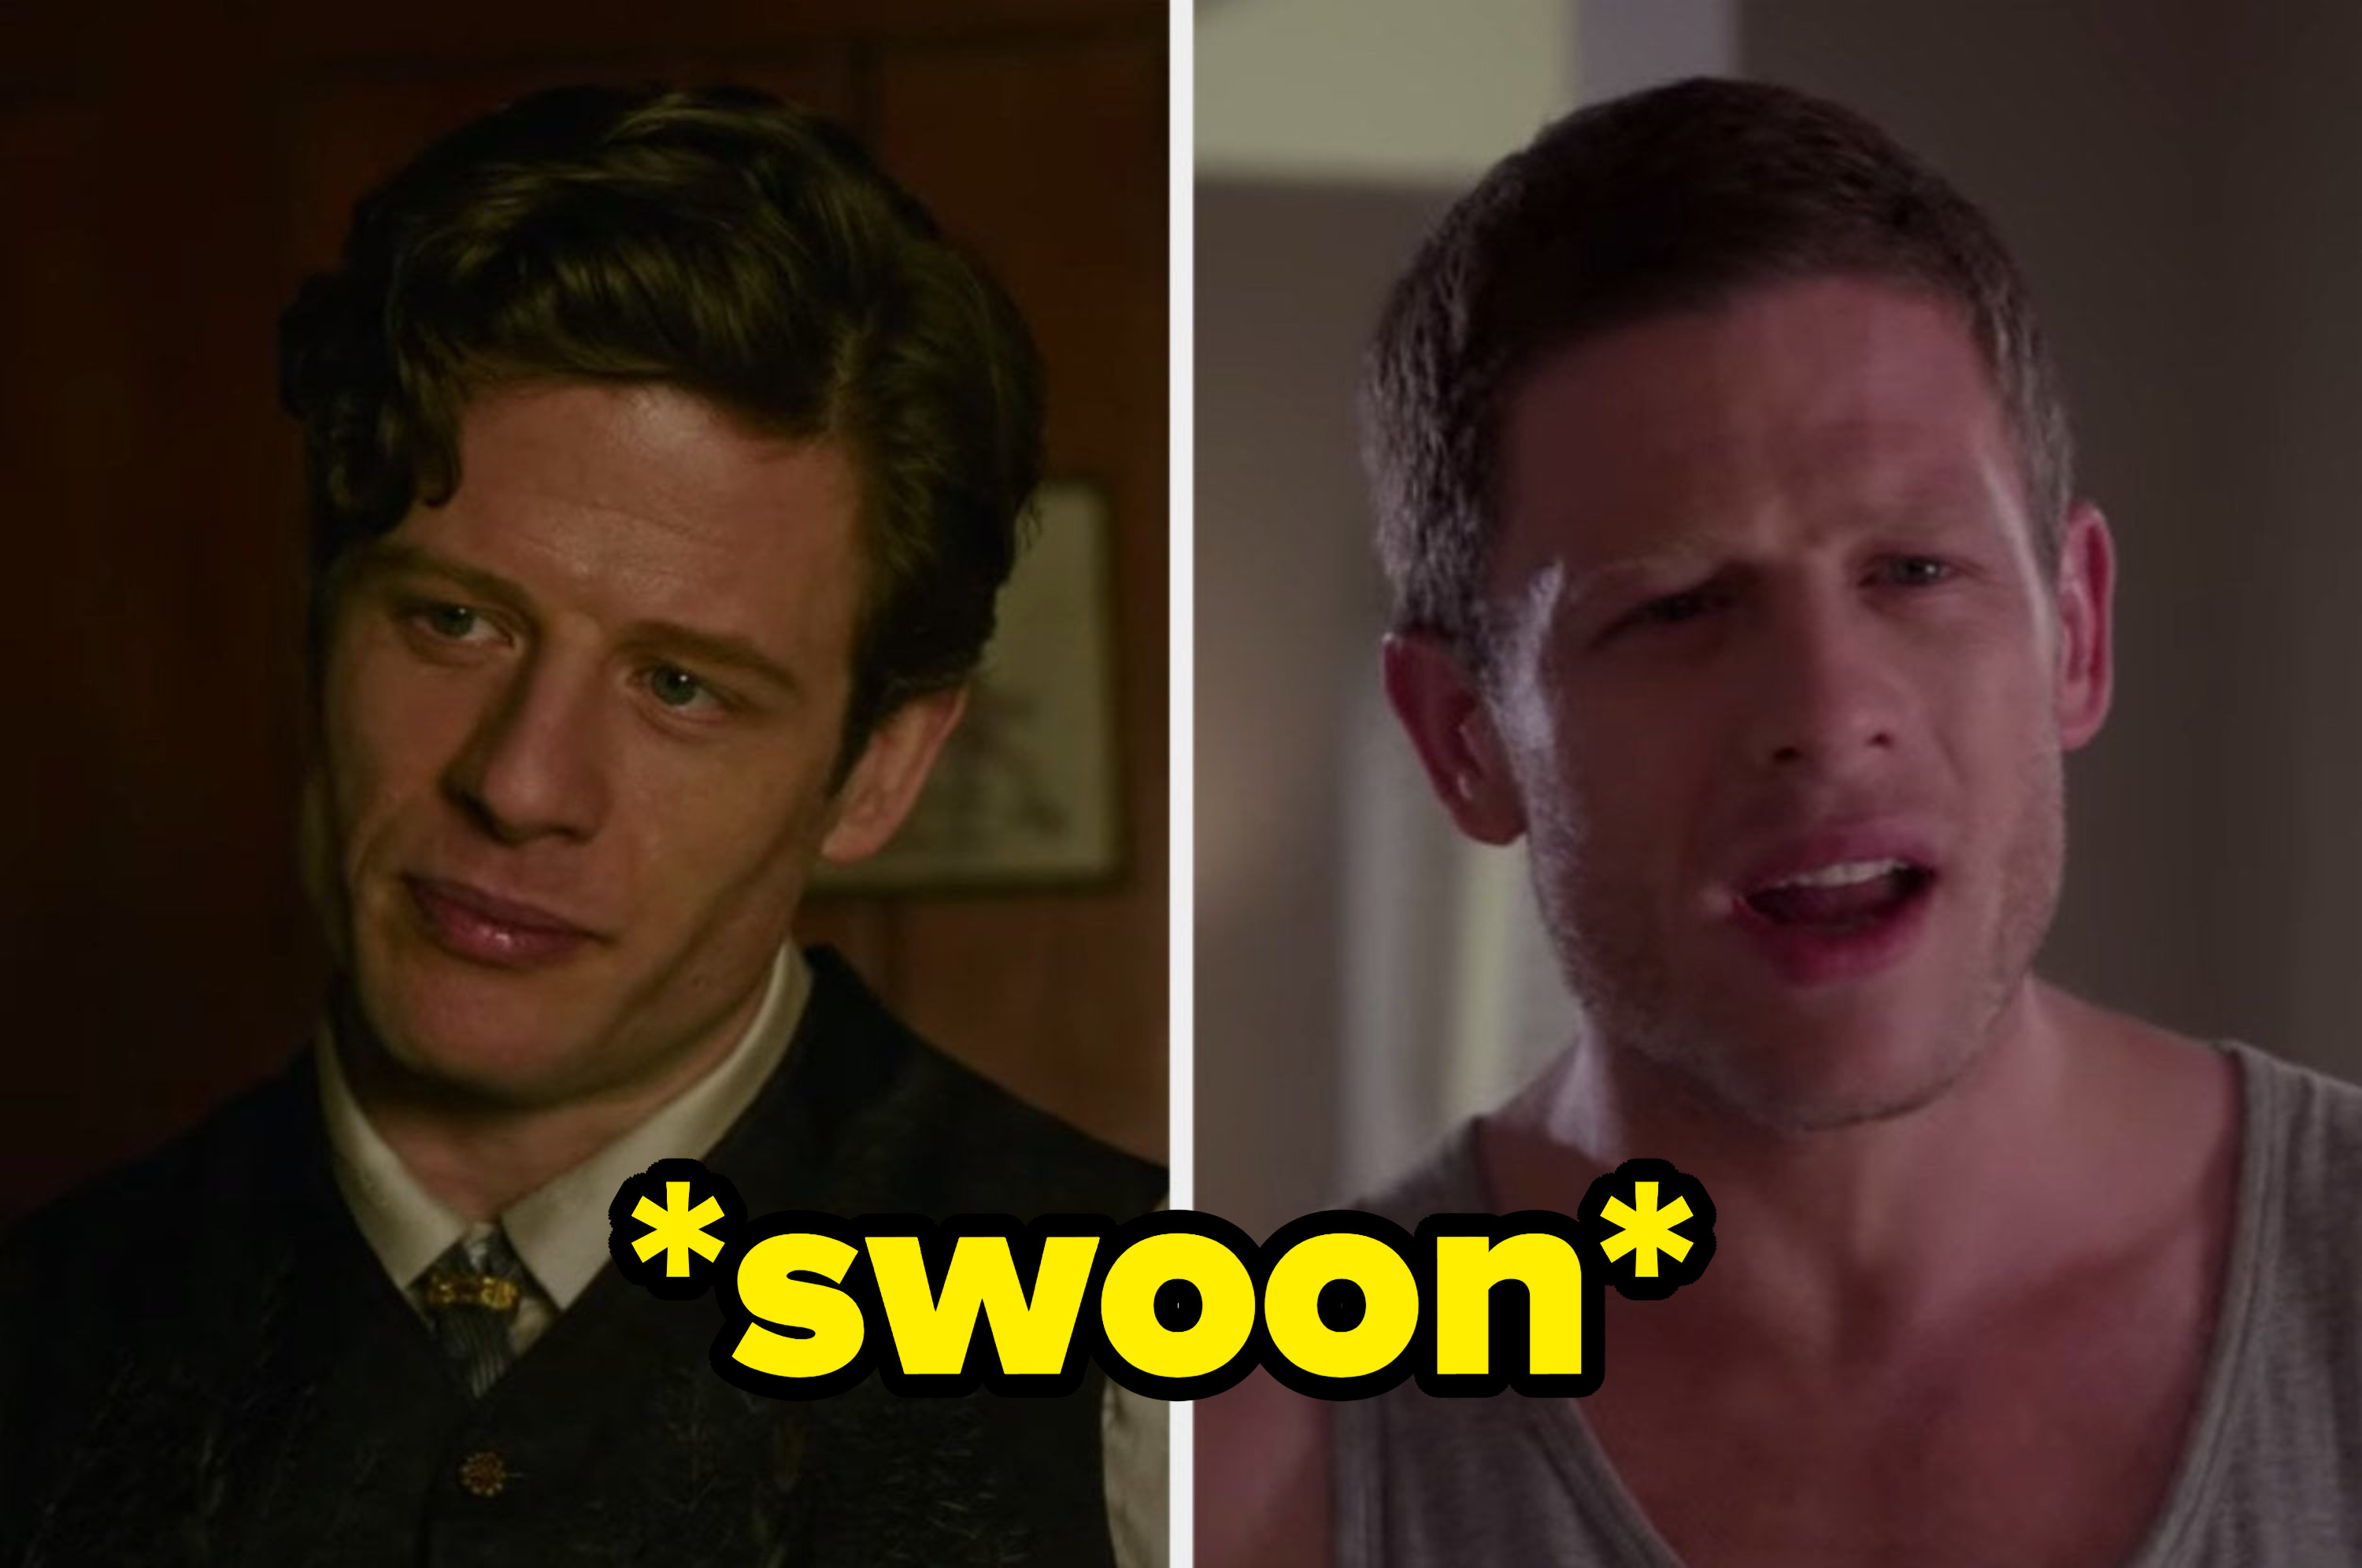 """James Norton looking classy in """"The Nevers"""" and more casual in """"Black Mirror"""" with the caption """"swoon"""""""